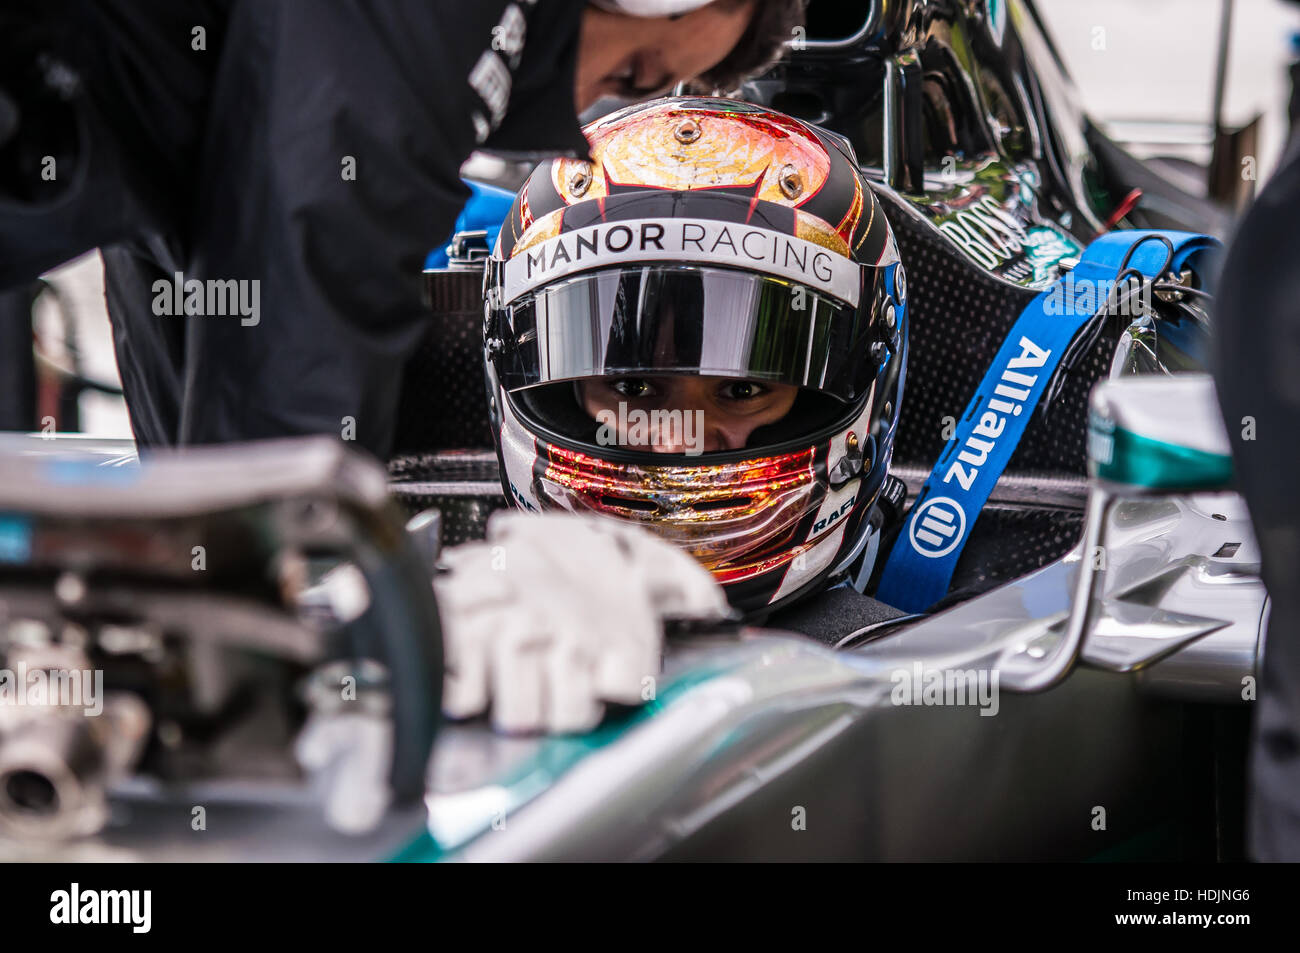 pascal-wehrlein-in-a-mercedes-formula-1-car-at-the-2016-goodwood-festival-HDJNG6.jpg